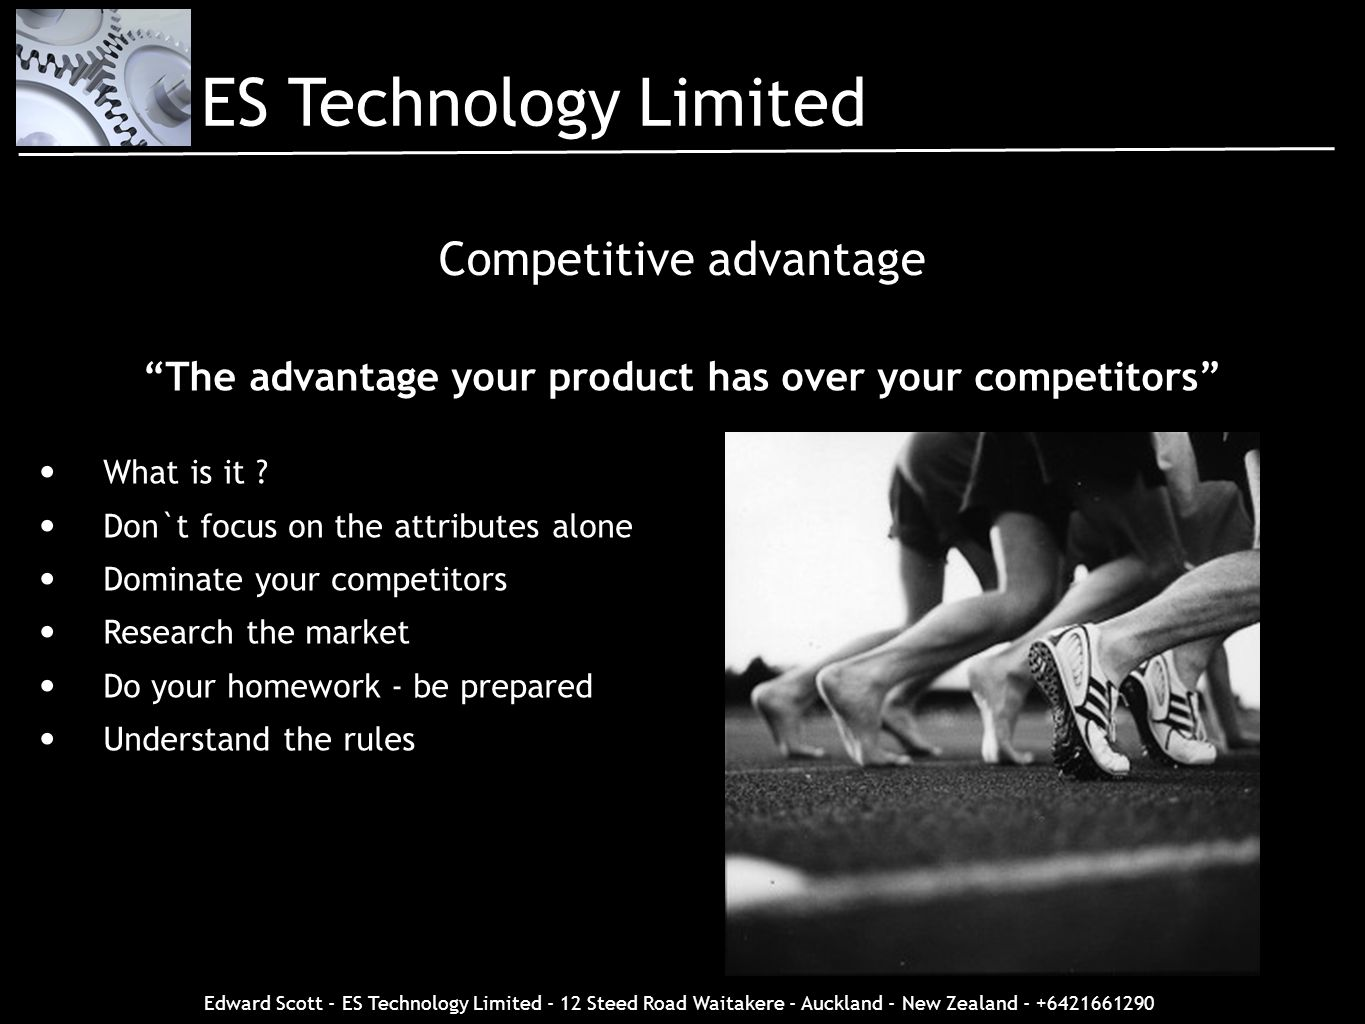 The advantage your product has over your competitors